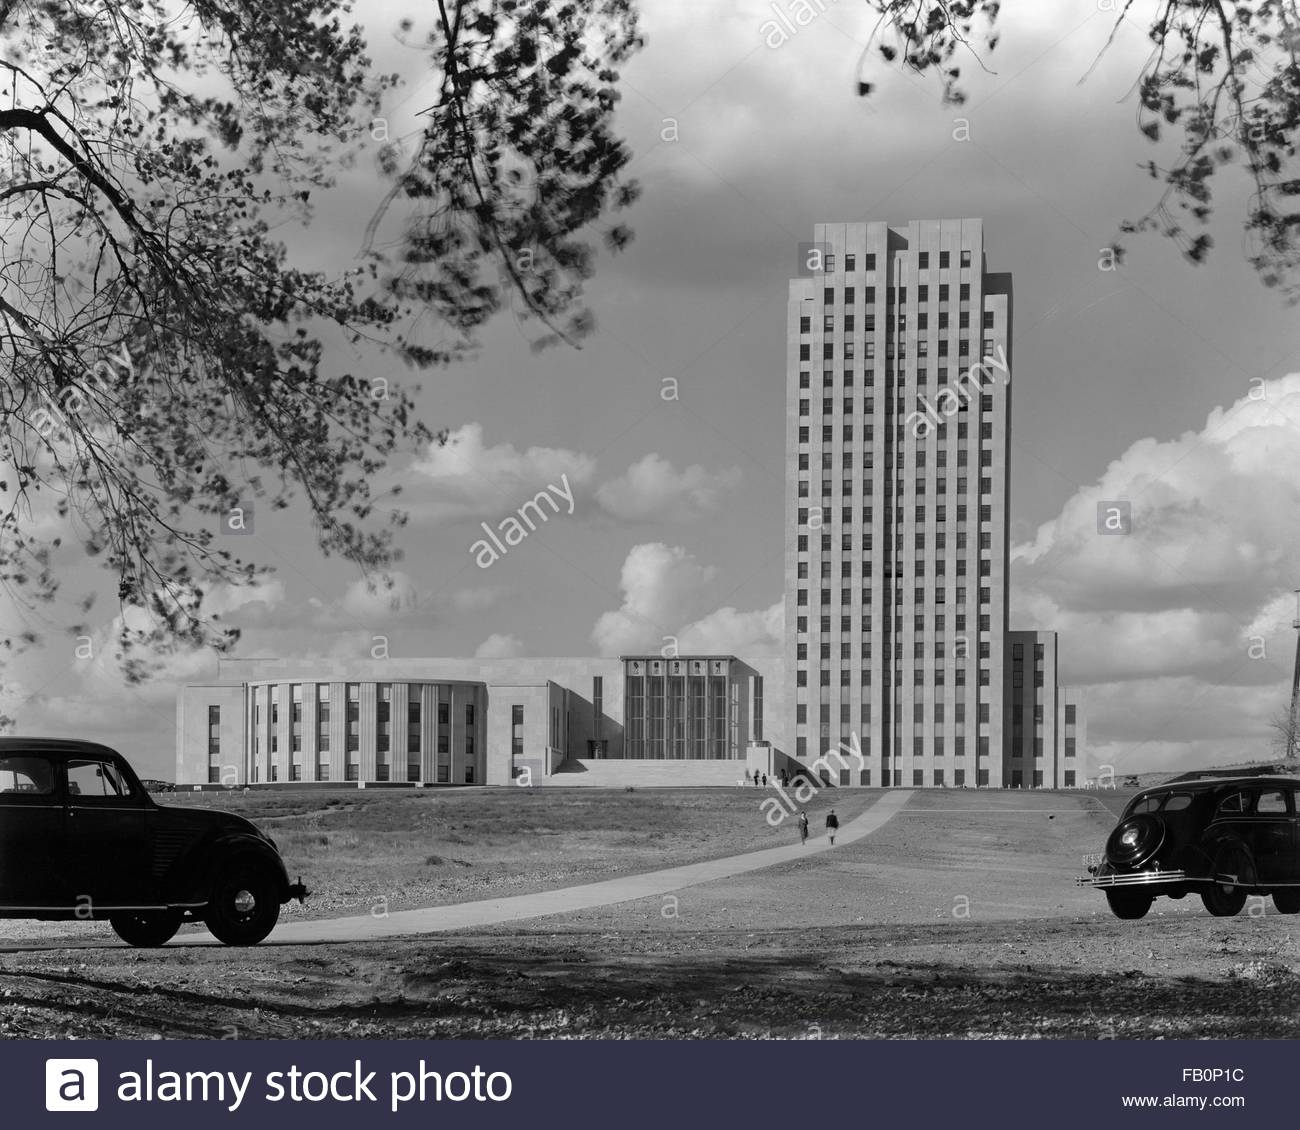 North Dakota State Capitol in Bismarck (N.D.), 1941 Jan. 13. Exterior, building with cars driving in the foreground - Stock Image